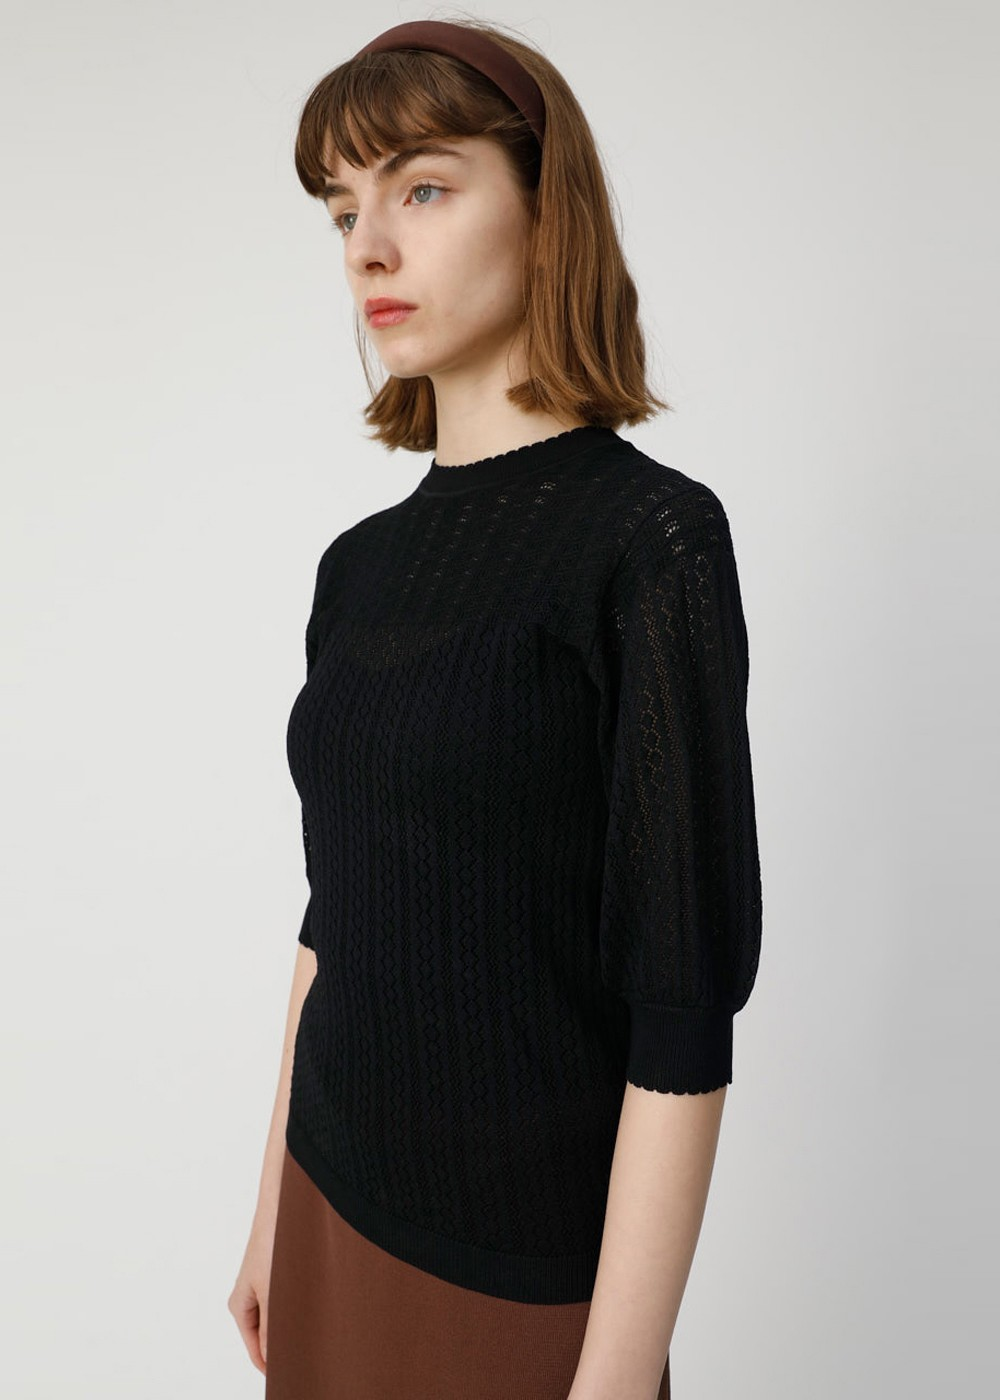 【最大70%OFF】LACY KNIT TOP|BLK|ニット|MOUSSY